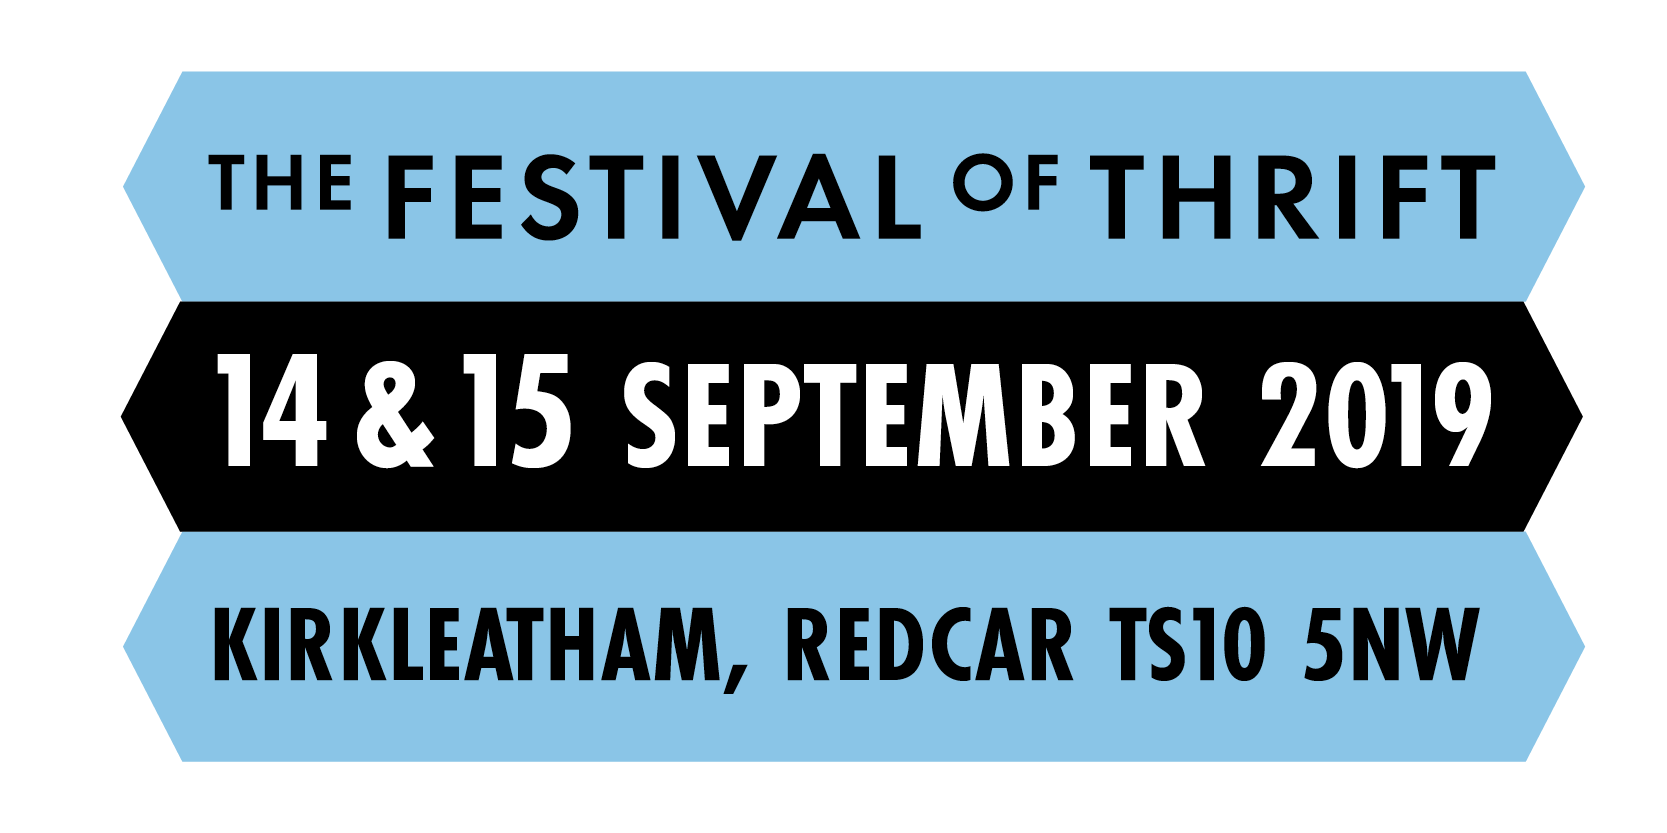 The festival of thrift logo with the dates, 14 & 15 September, and address